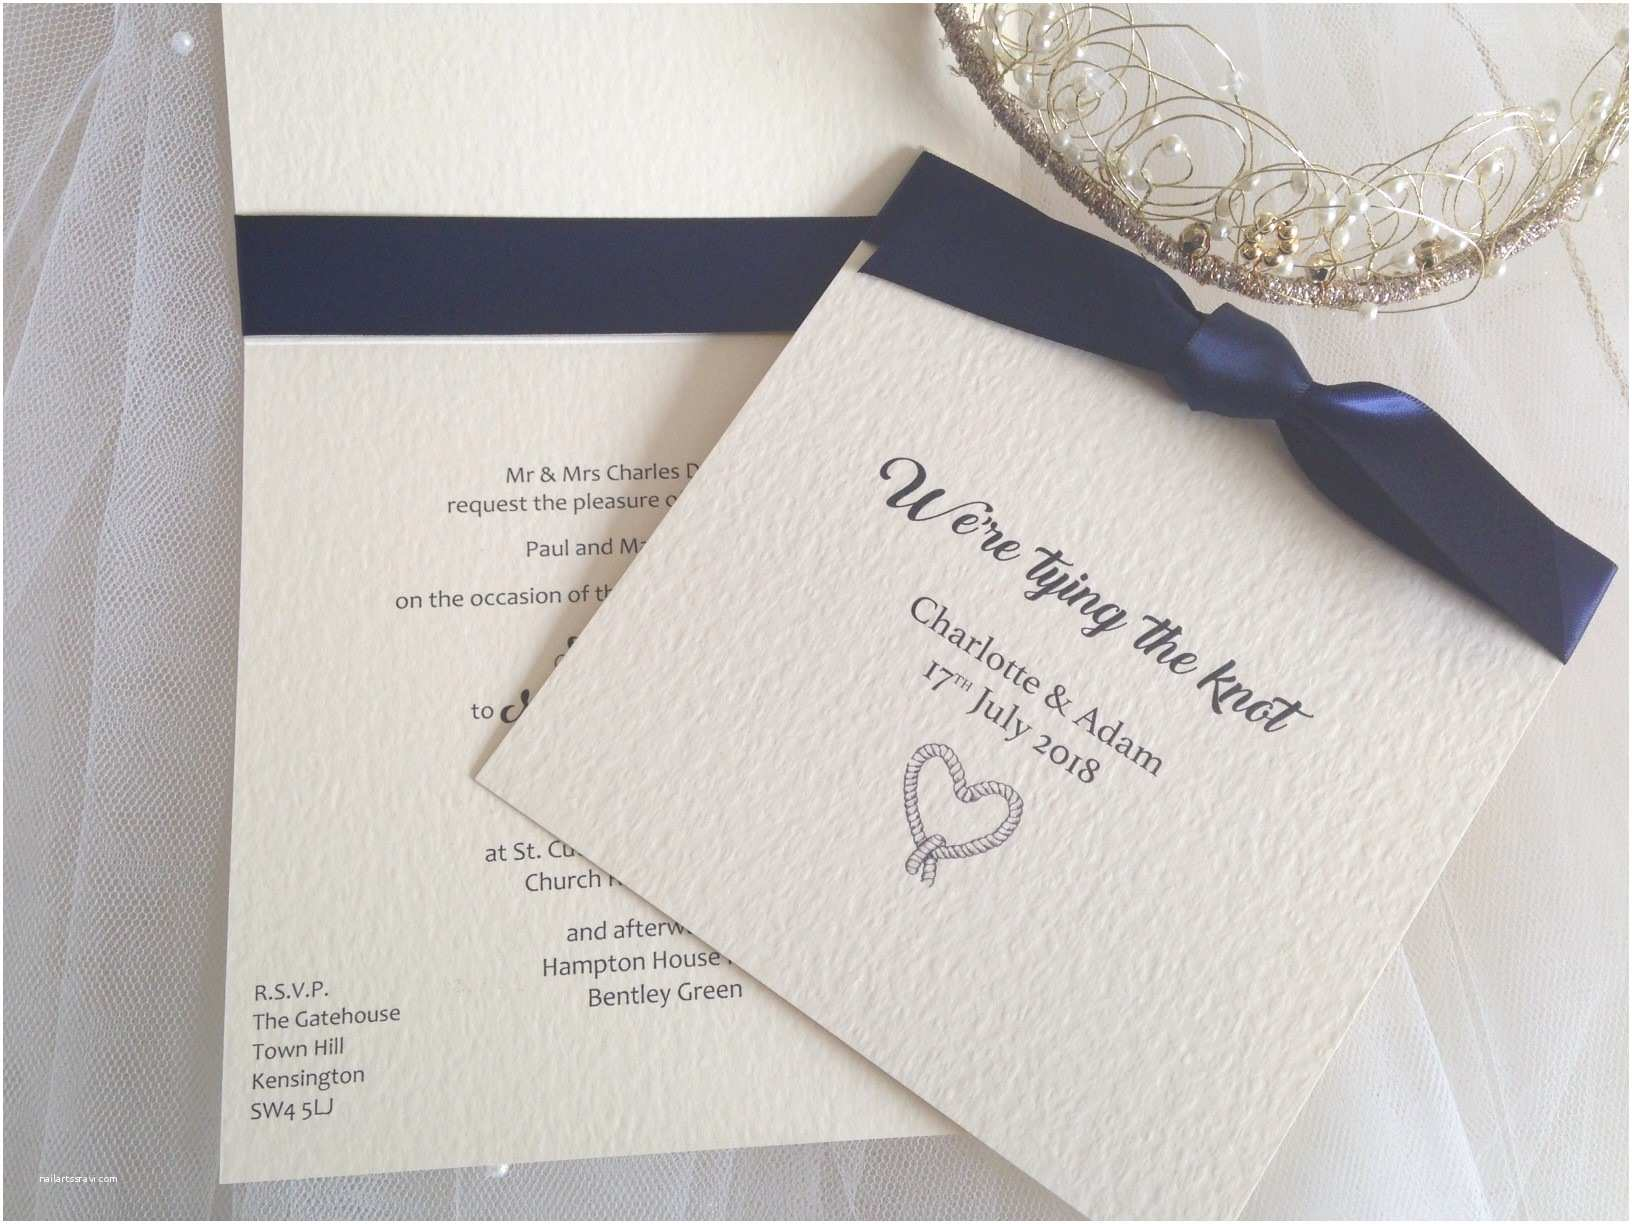 Tying the Knot Wedding Invitations Tying the Knot Wedding Invitations